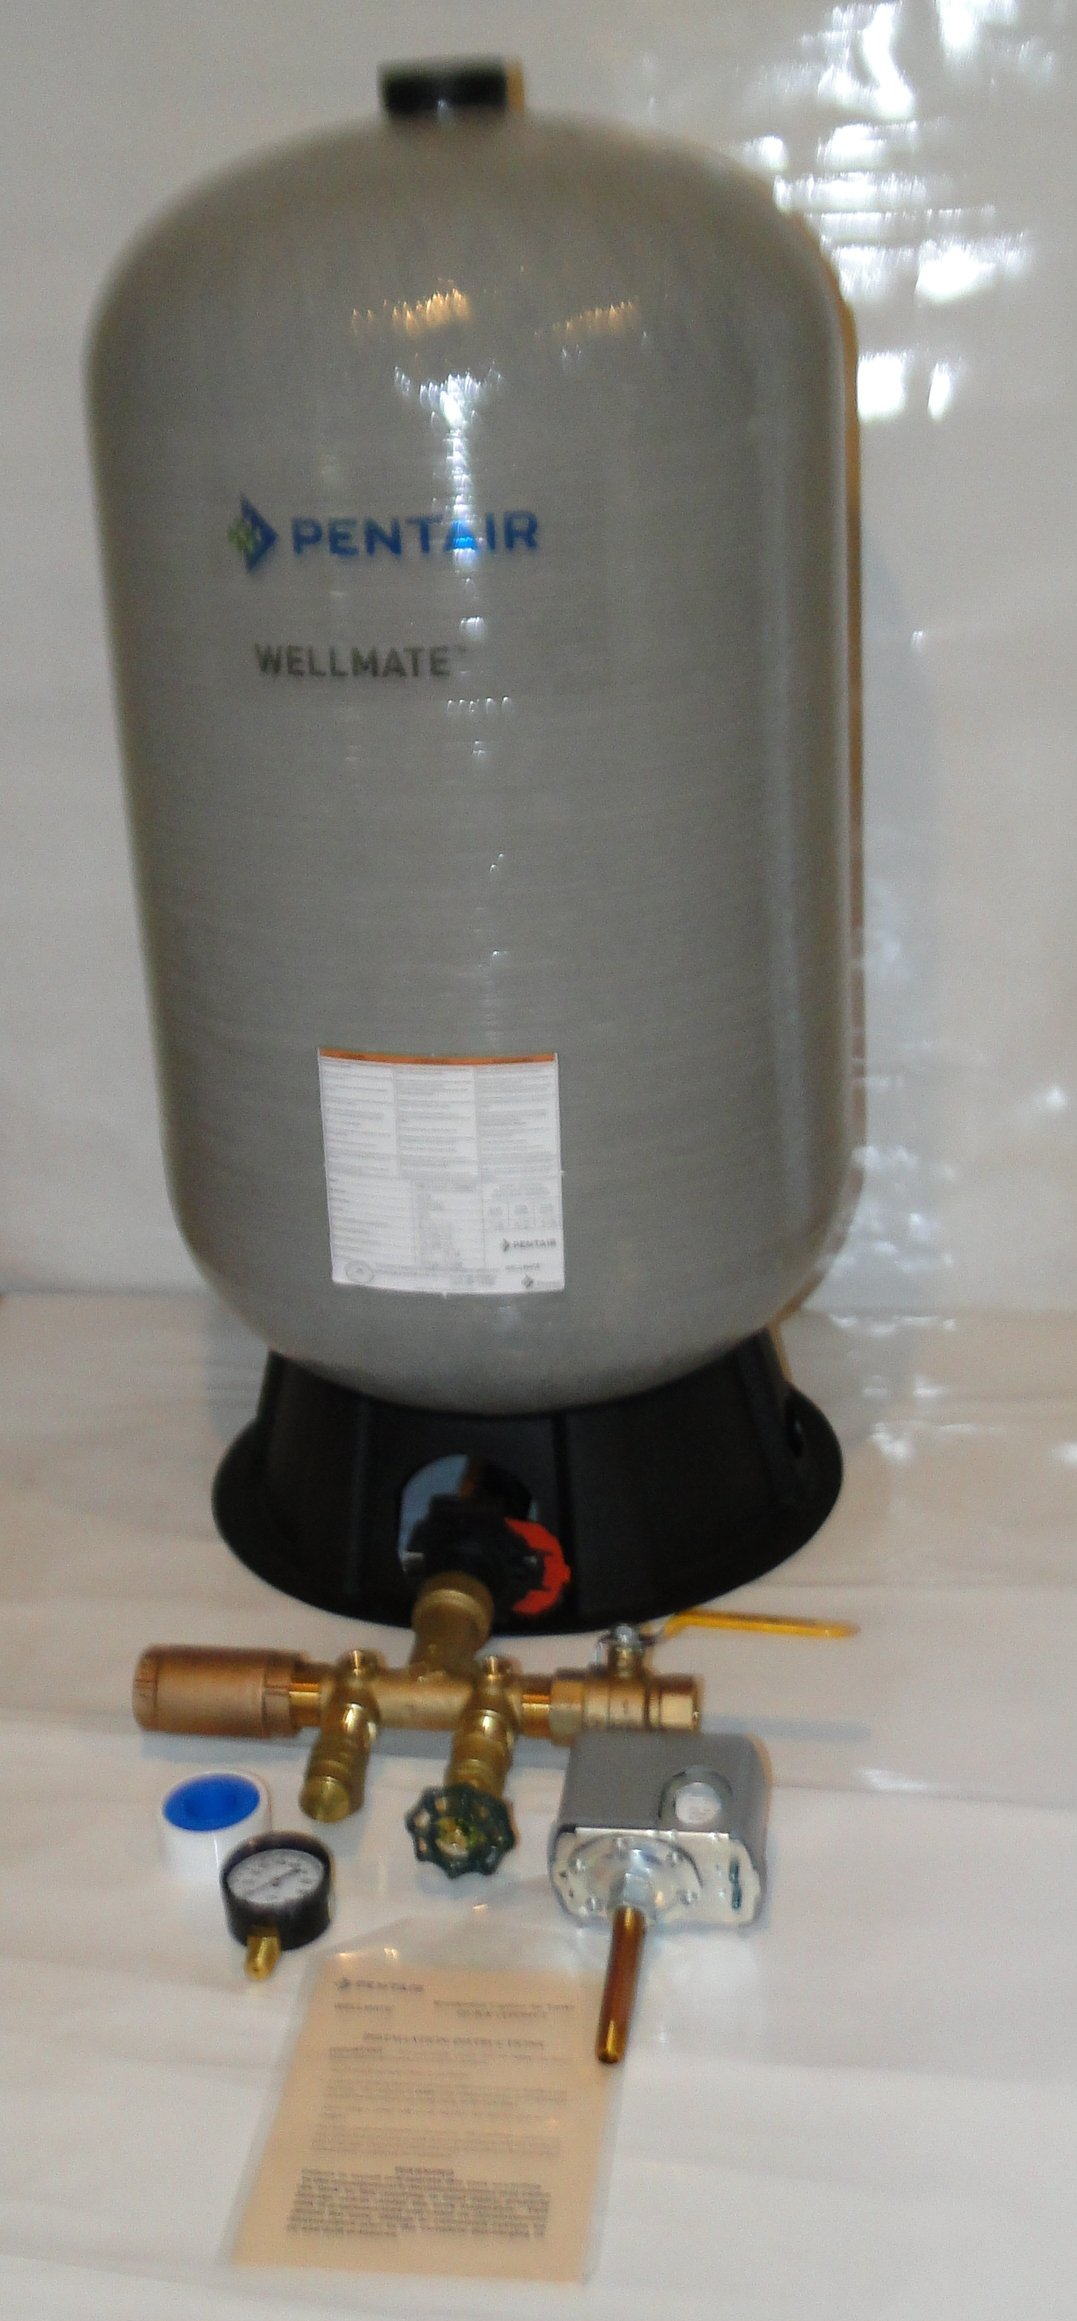 WELLMATE PENTAIR WM6 WM-6 20 gallon quick connect + Brass tank tee install kit + brass ball and check Valves -Free standing Water Well PRESSURE TANK FSG2 SQUARE D 40 60 by Pentair